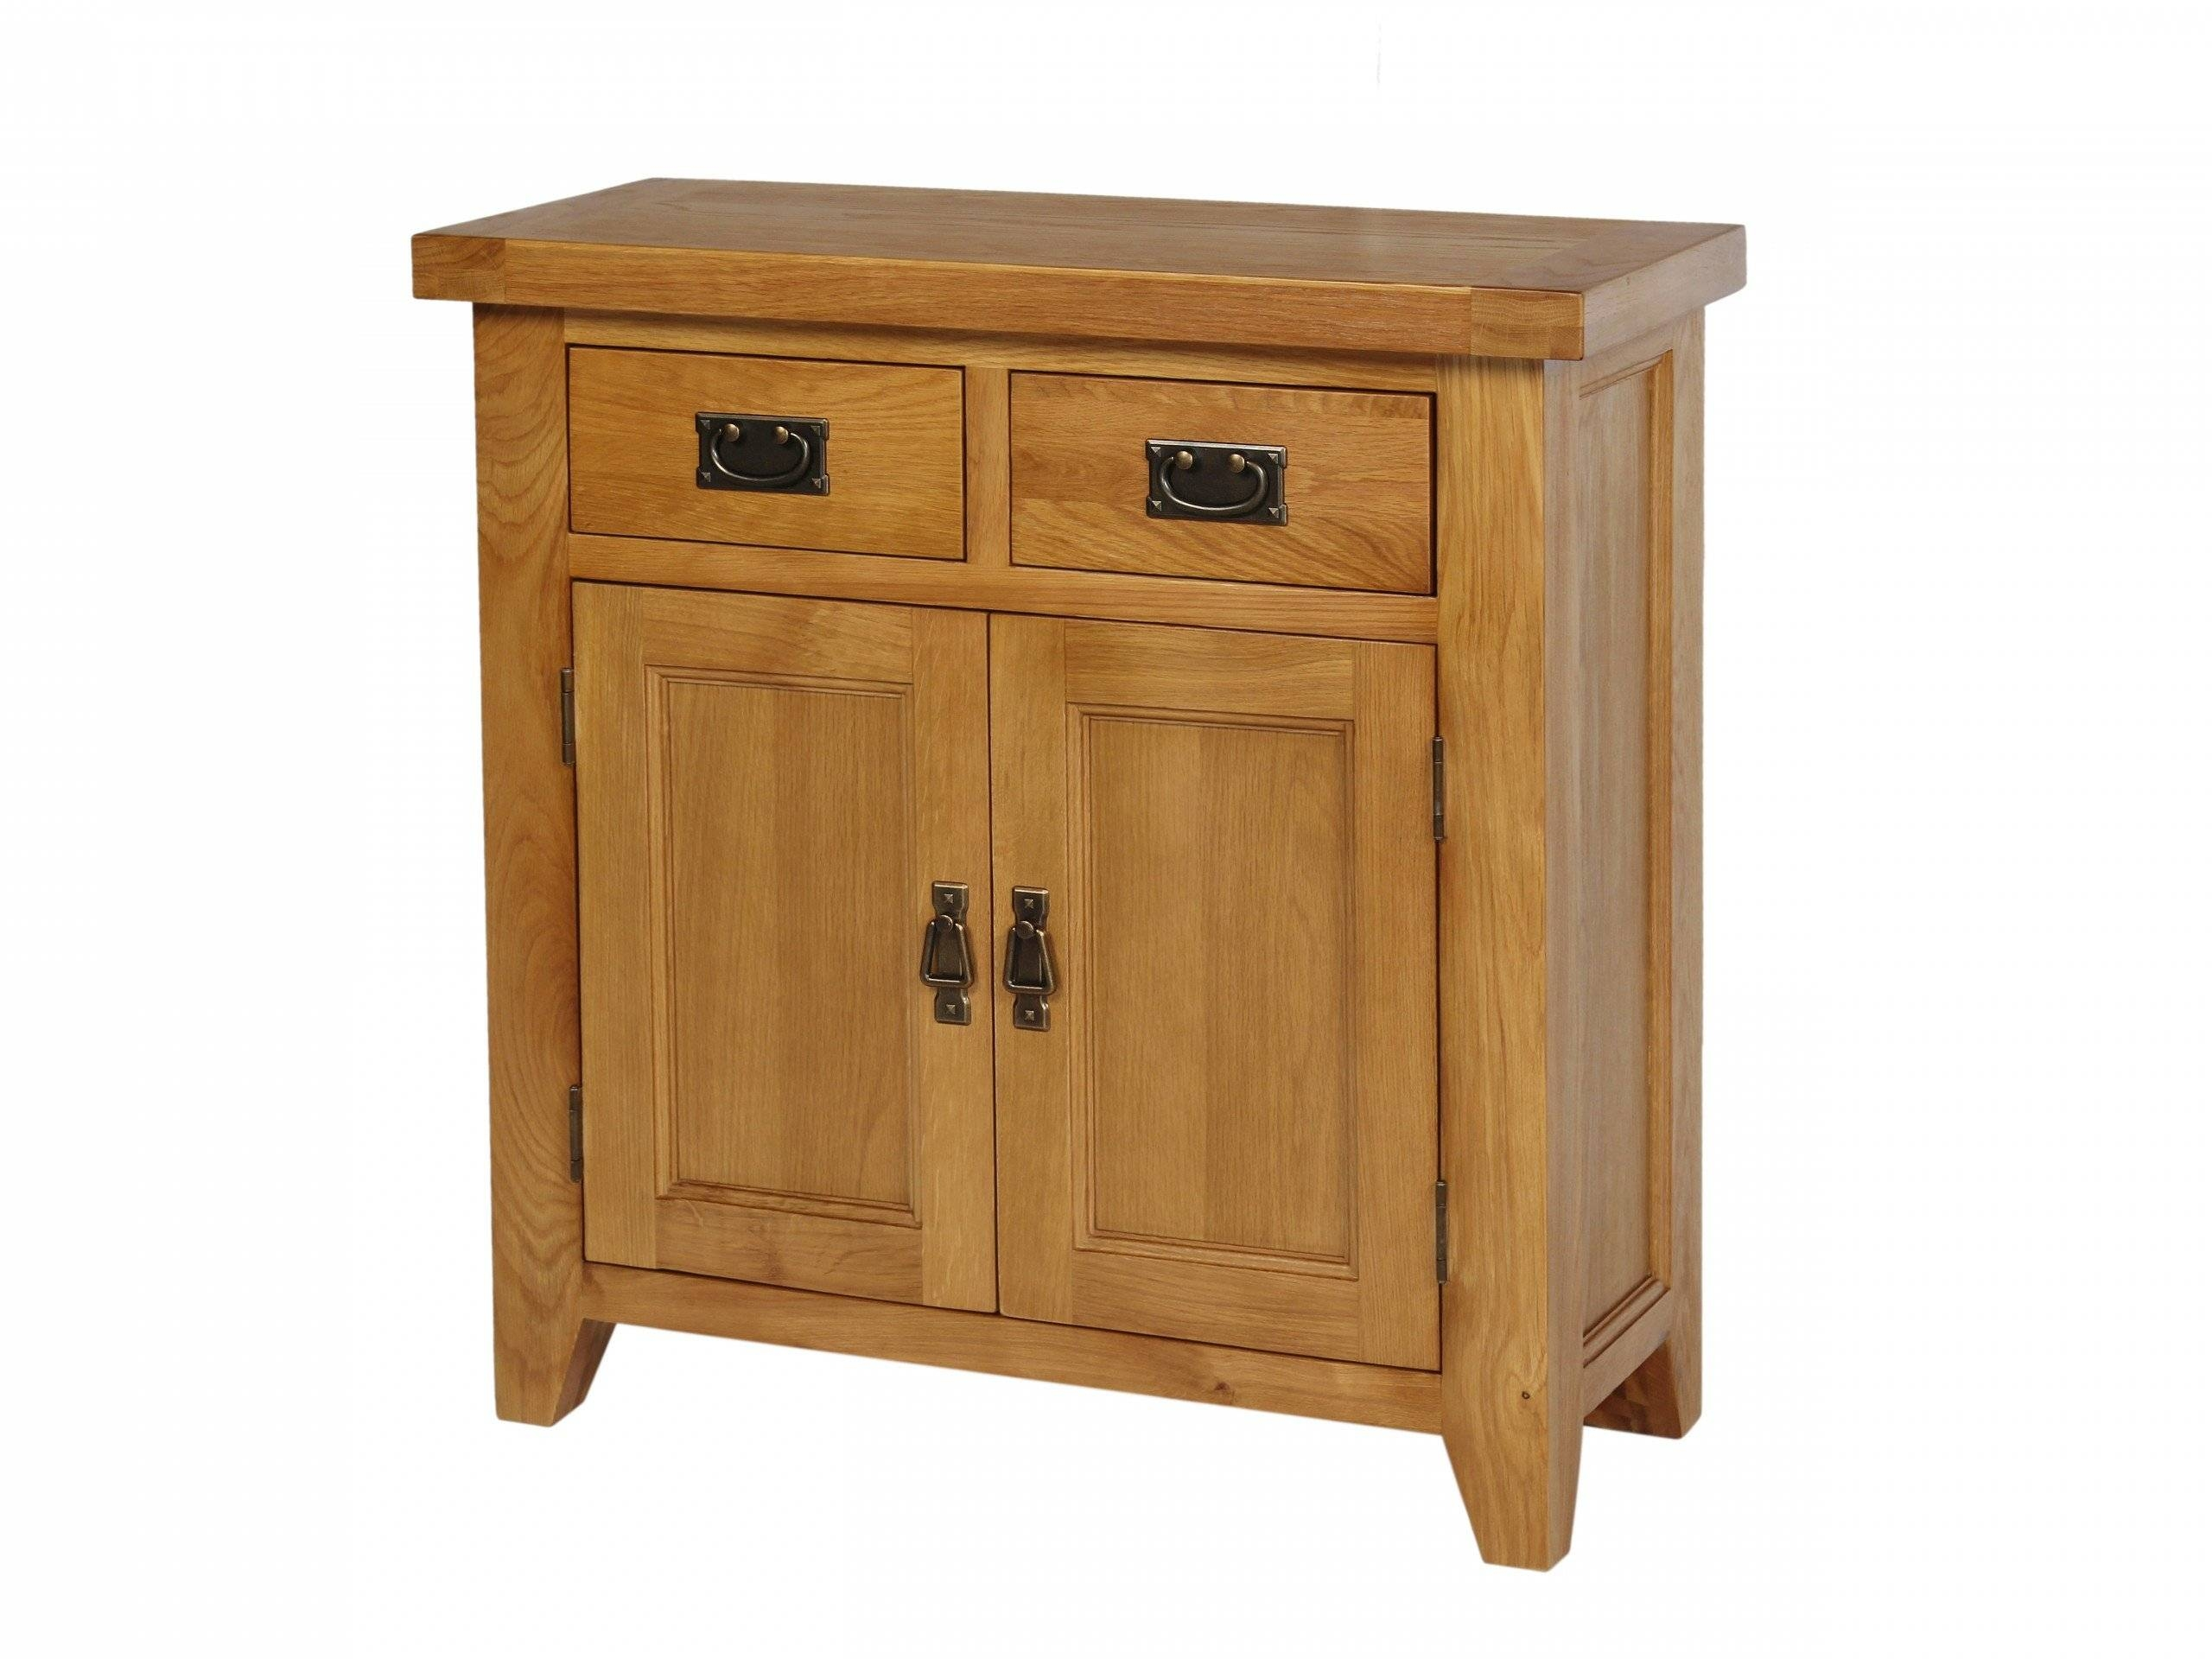 Small 80Cm Wide Country Oak Petite Sideboard with regard to Small Wooden Sideboards (Image 25 of 30)